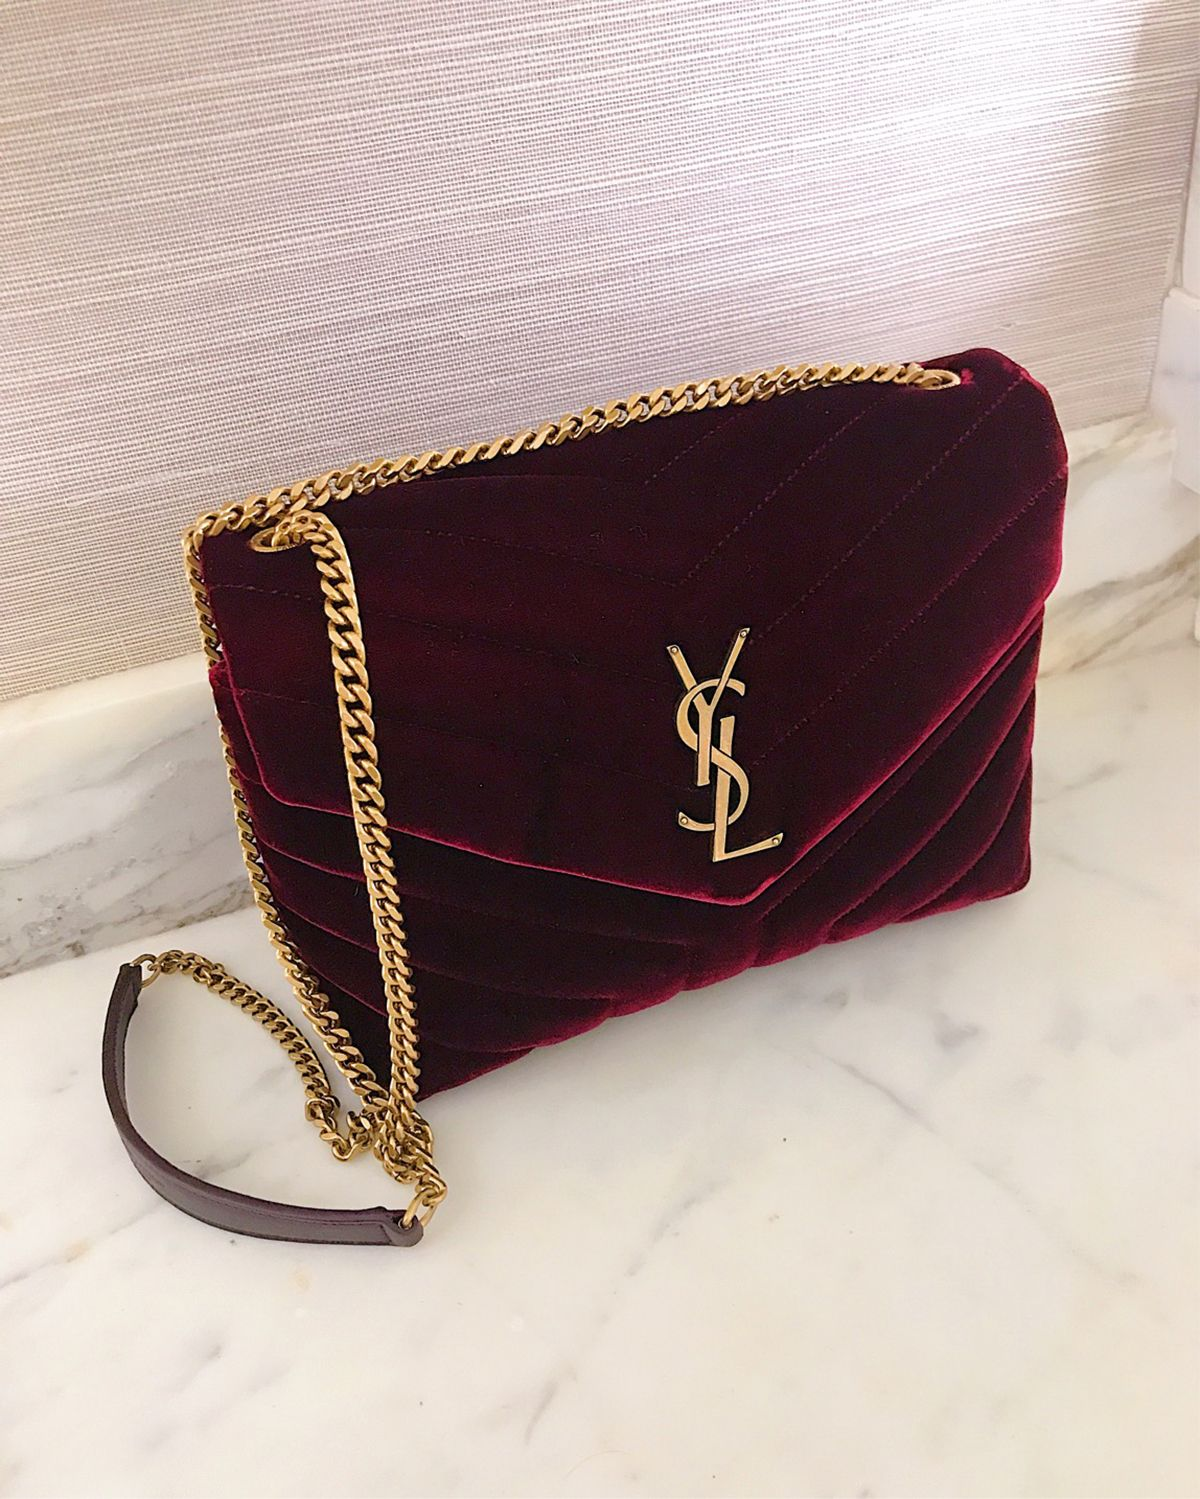 042ec488bd8 IG Round-up | Accessories | Ysl bag, Bags, Bag accessories